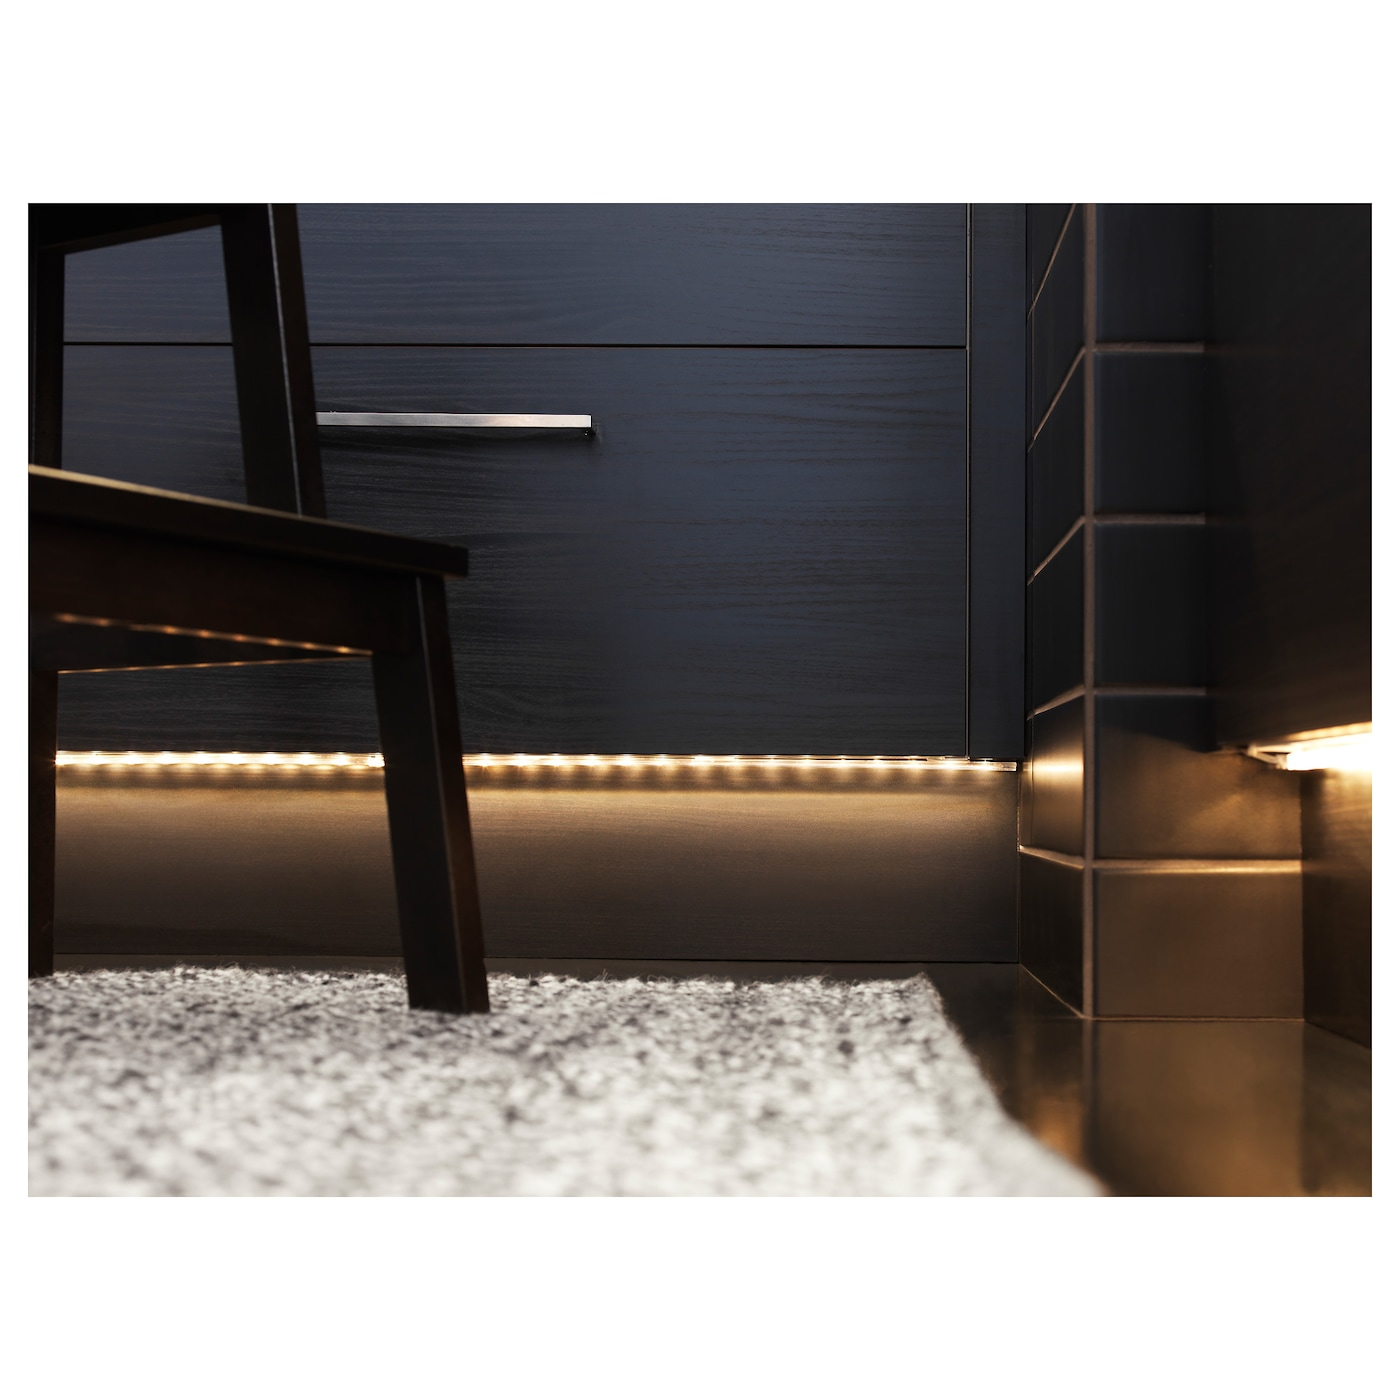 ikea dioder led lighting strip you can connect up to 4 pieces in a straight line